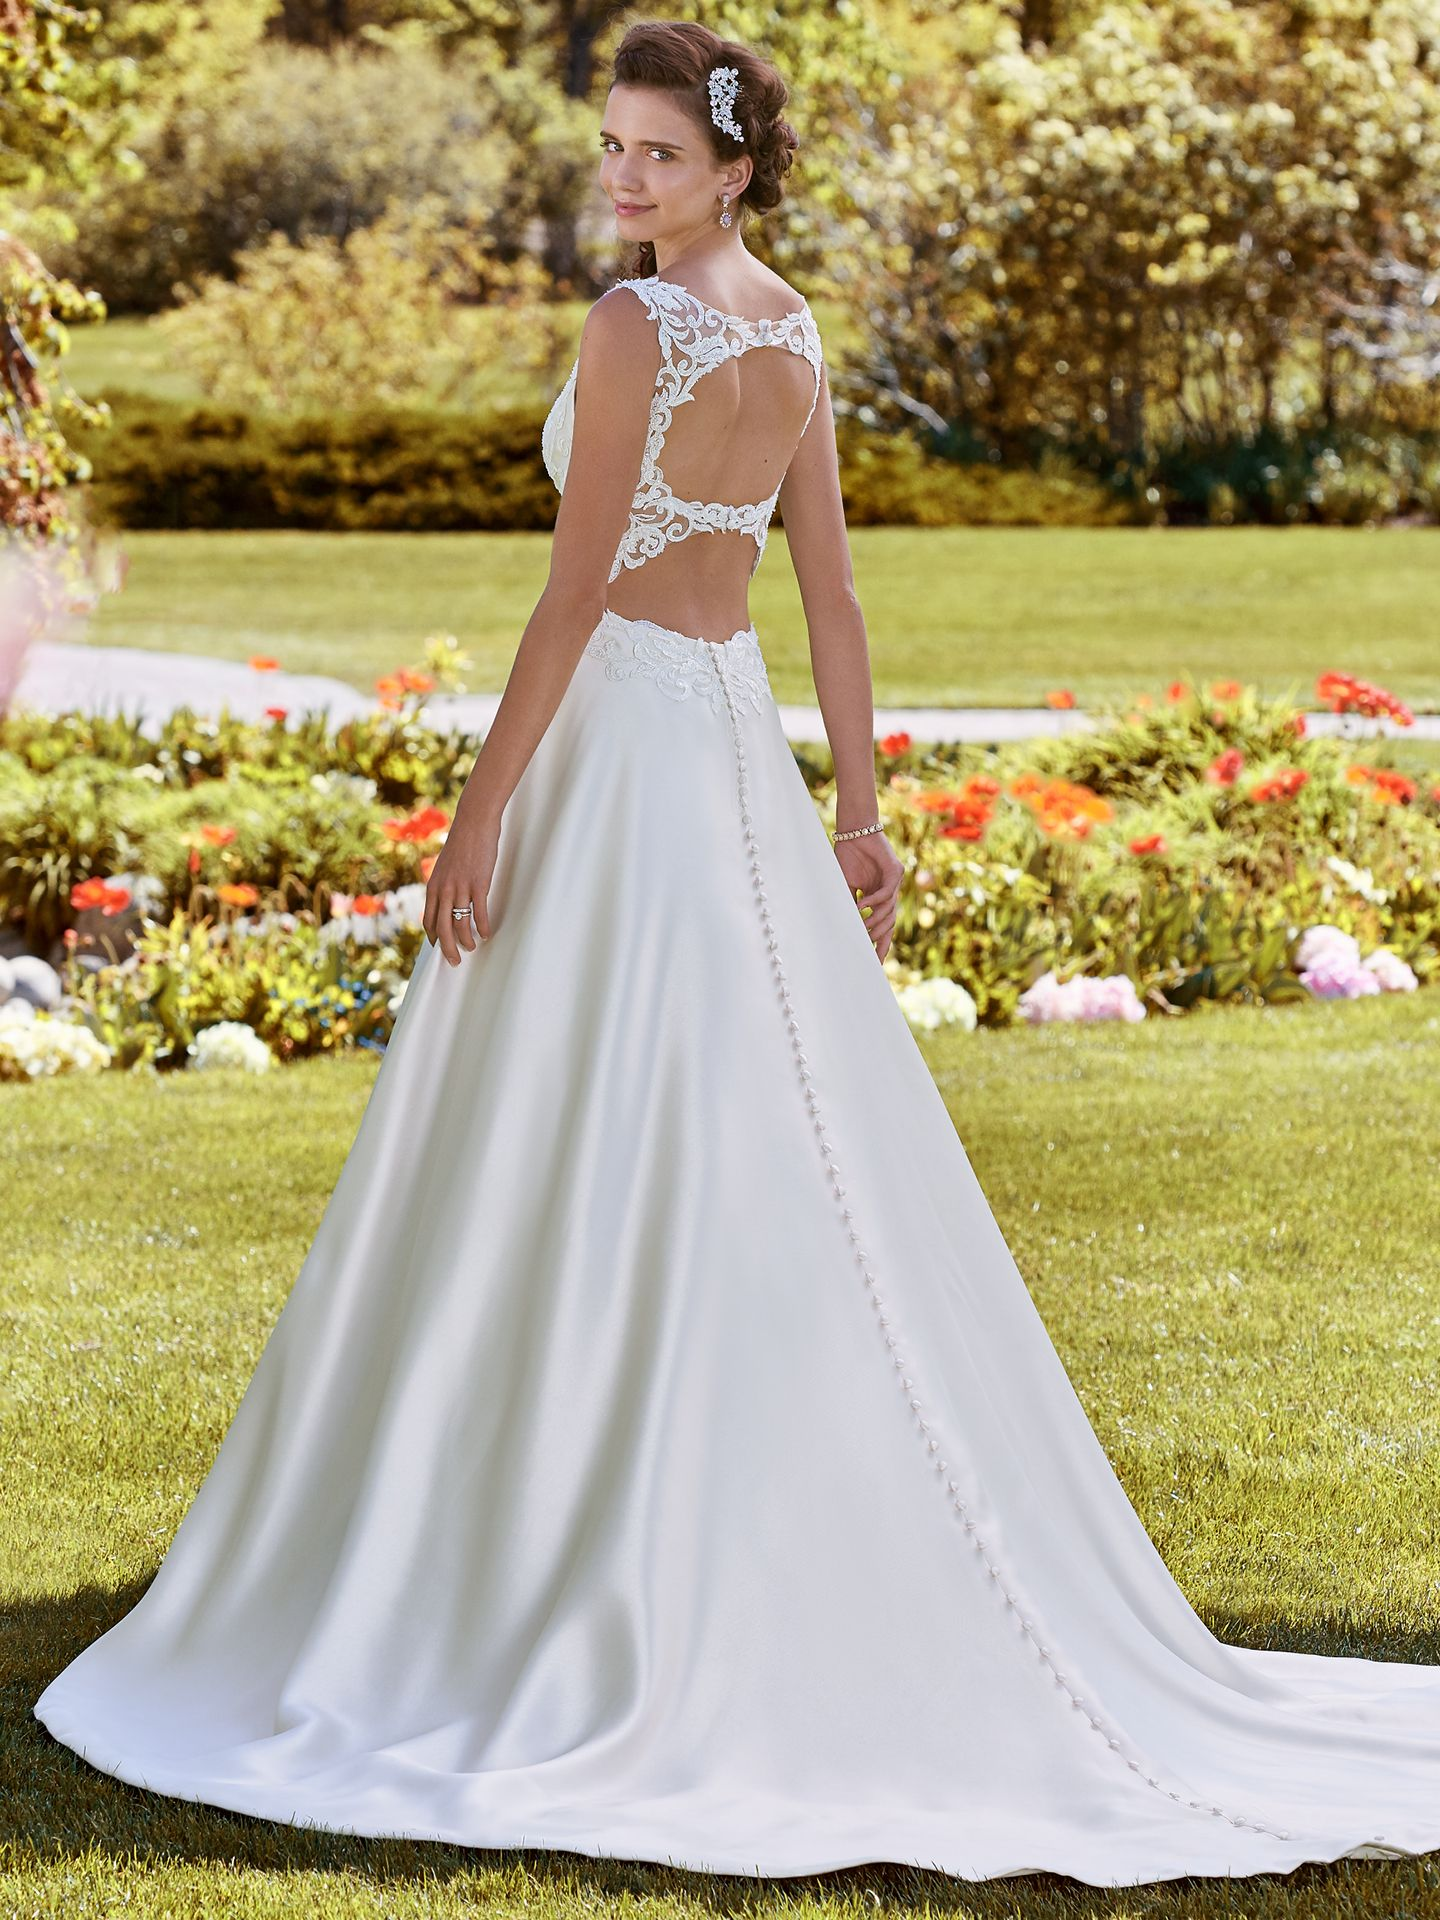 Brooke Mikado princess ball gown wedding dress with keyhole back by Rebecca Ingram. Modern Royalty: Wedding Dresses Inspired by the Royal Engagement